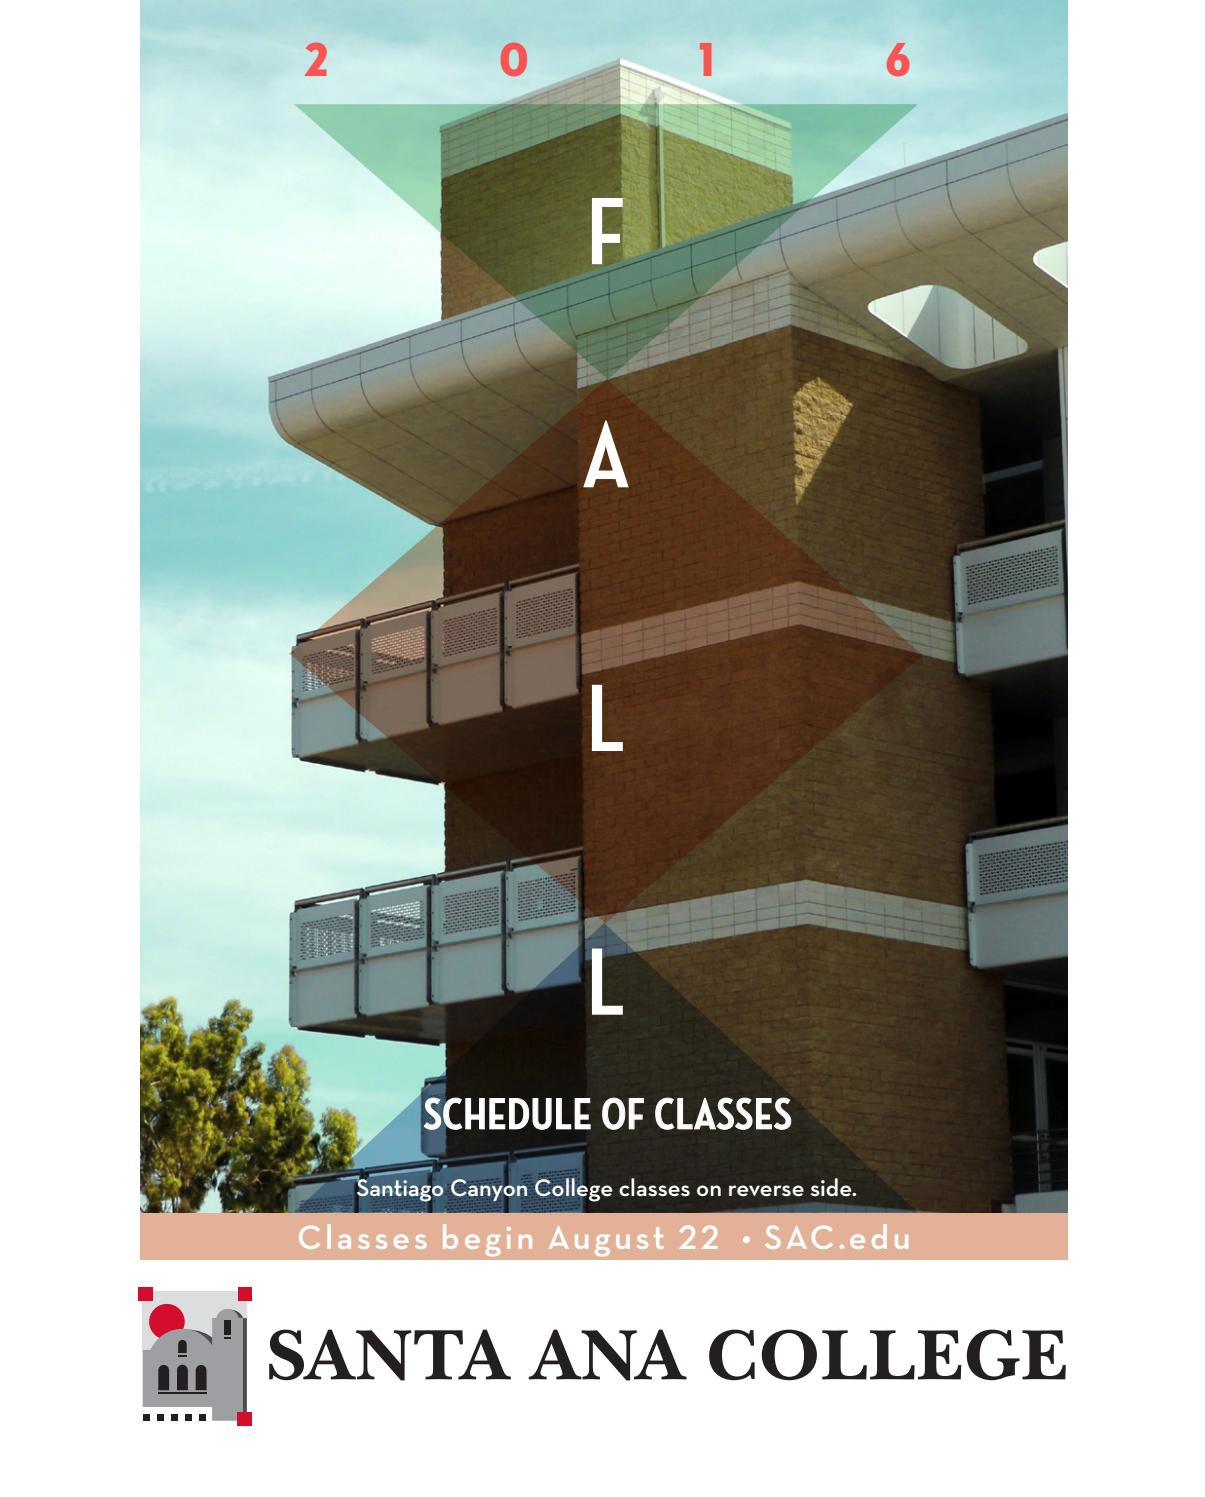 Santa ana college fall 2016 schedule of classes by santa ana santa ana college fall 2016 schedule of classes by santa ana college issuu aiddatafo Choice Image